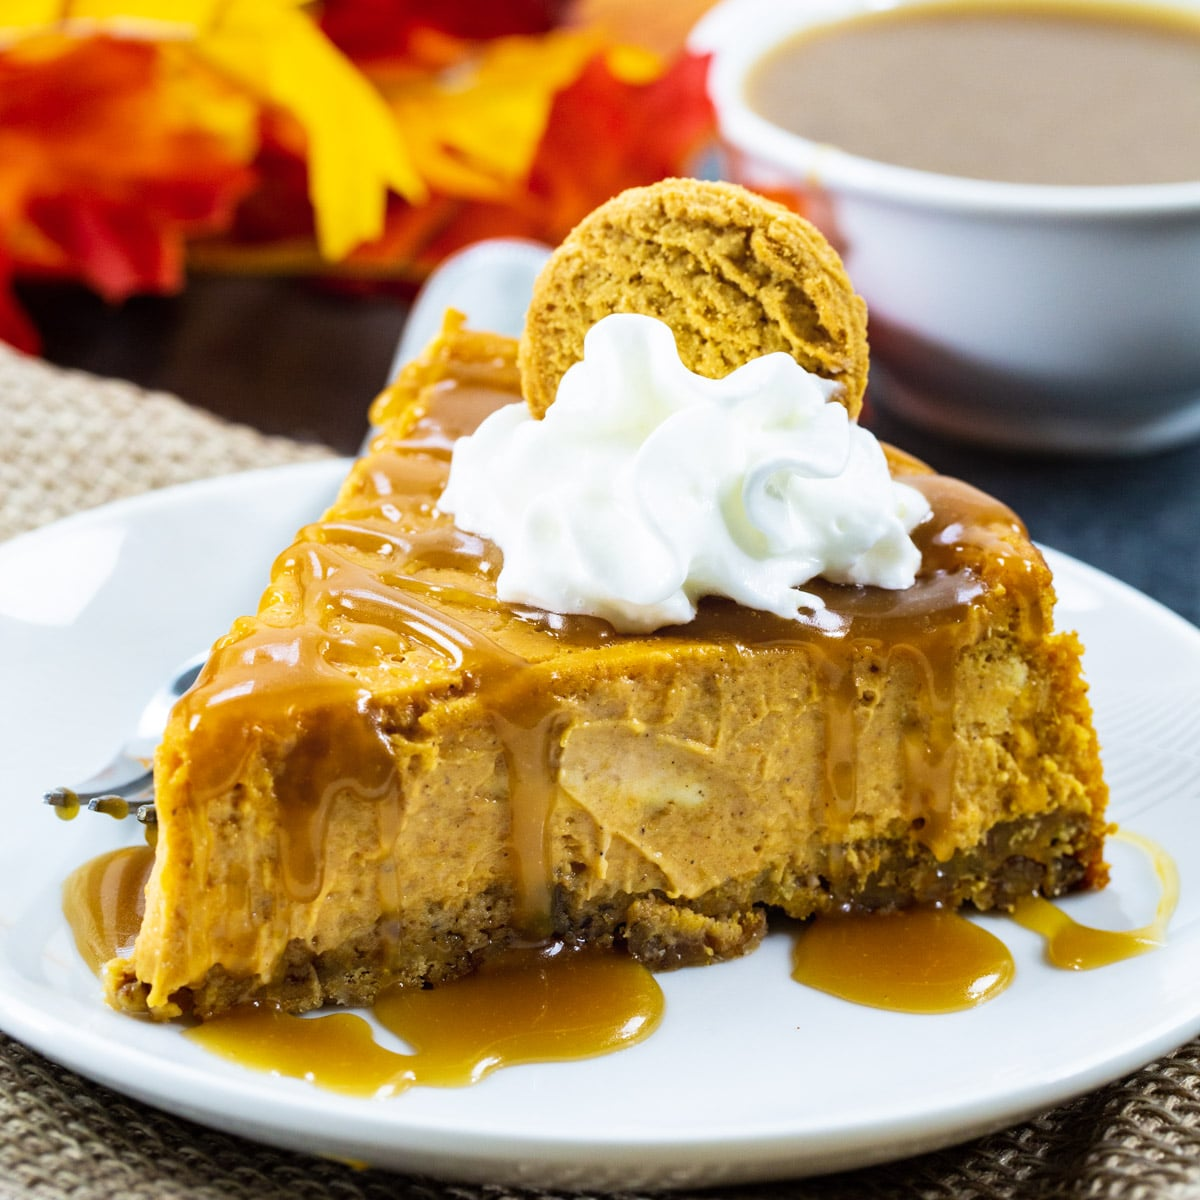 Slice of Pumpkin CHeesecake topped with whipped cream and drizzled with caramel sauce.